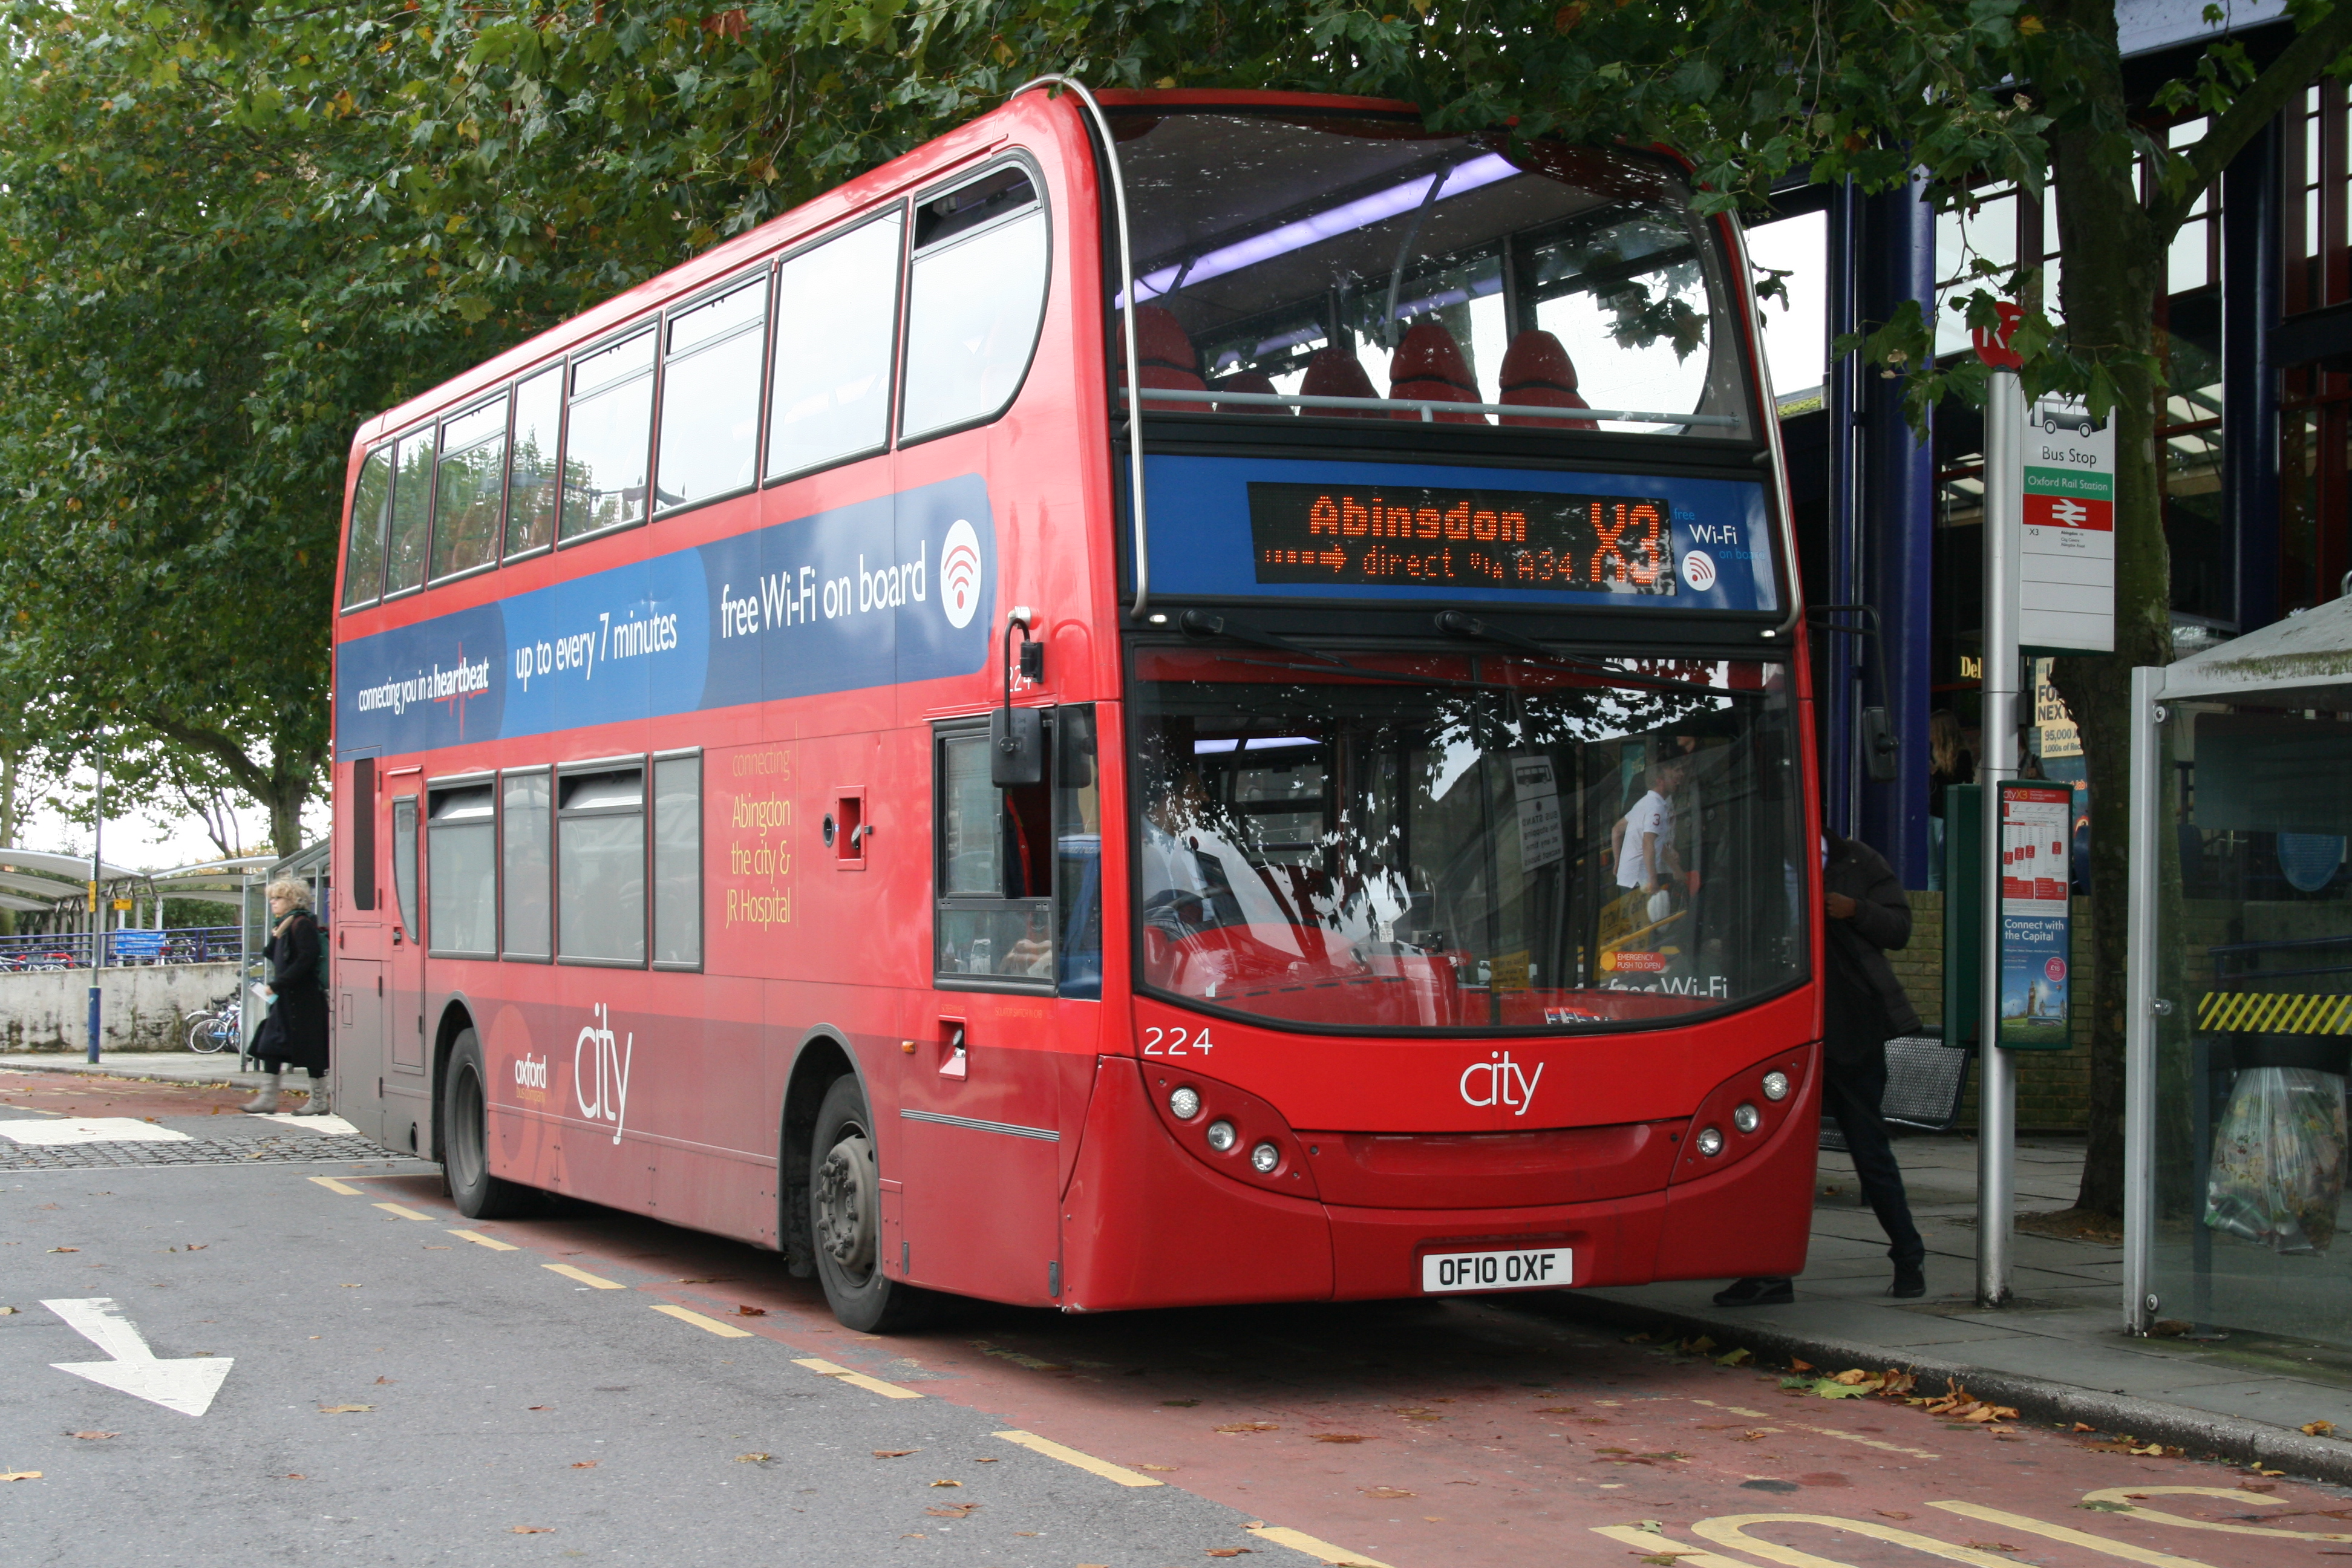 file:oxford bus company 224 on route x3, oxford station (15576900125